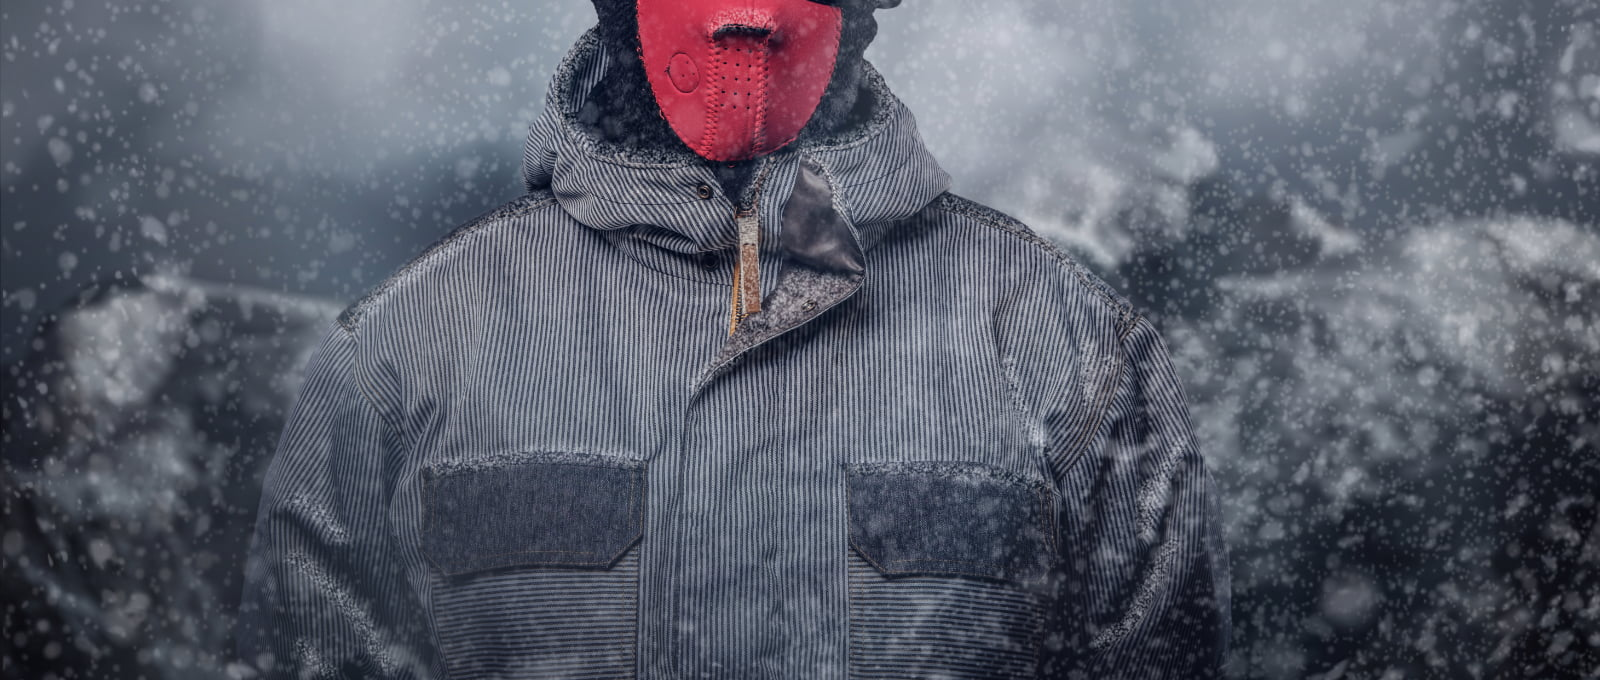 Portrait of a snowboarder dressed in a full protective gear